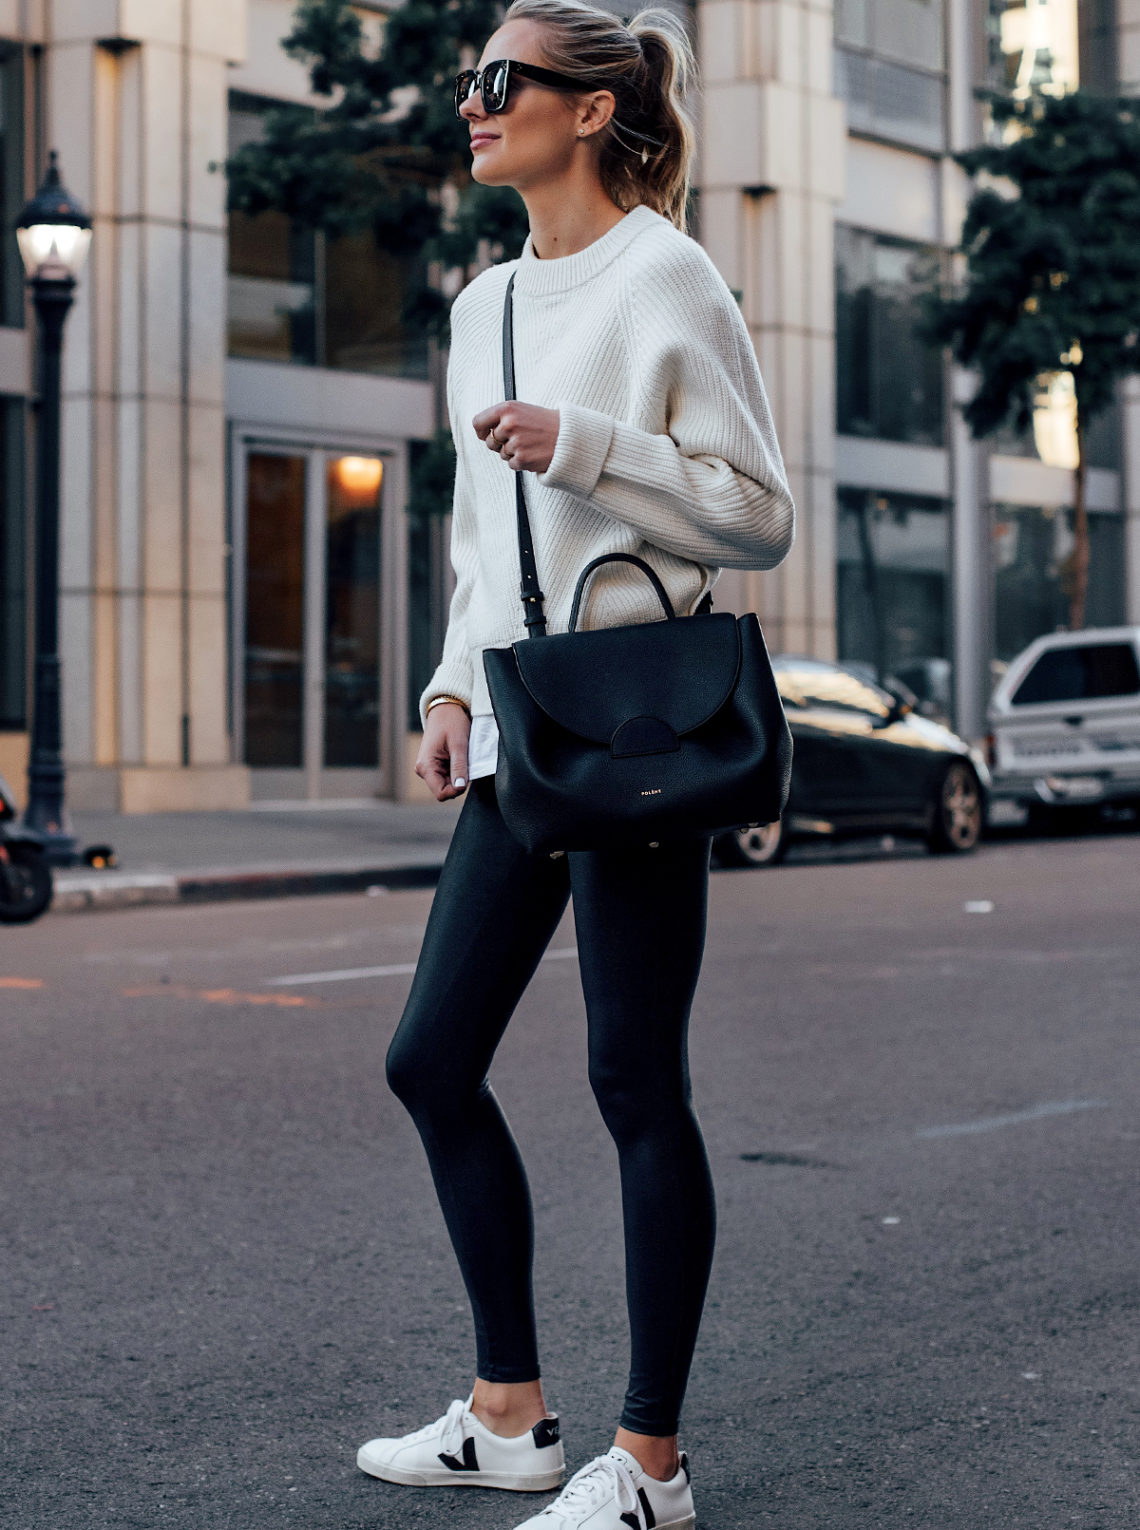 Blonde Woman Wearing Allsaints White Sweater White Tshirt Spanx Black Faux Leather Leggings Veja Espalar White Sneakers Polene Black Handbag Fashion Jackson San Diego Fashion Blogger Street Style